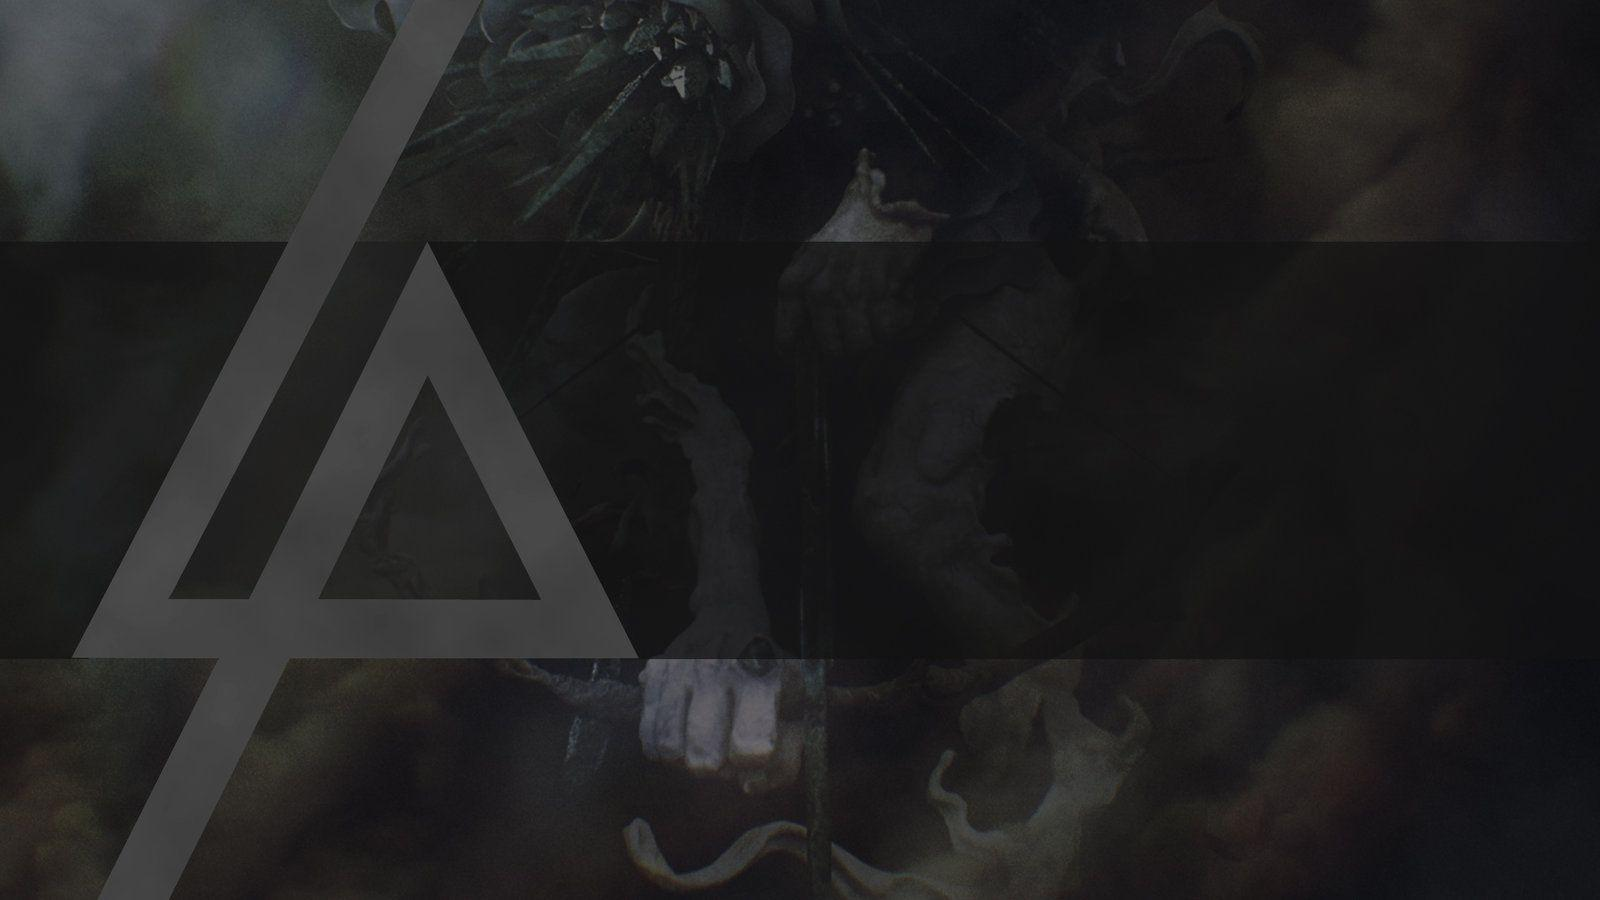 Linkin Park Hd Wallpapers For Laptop